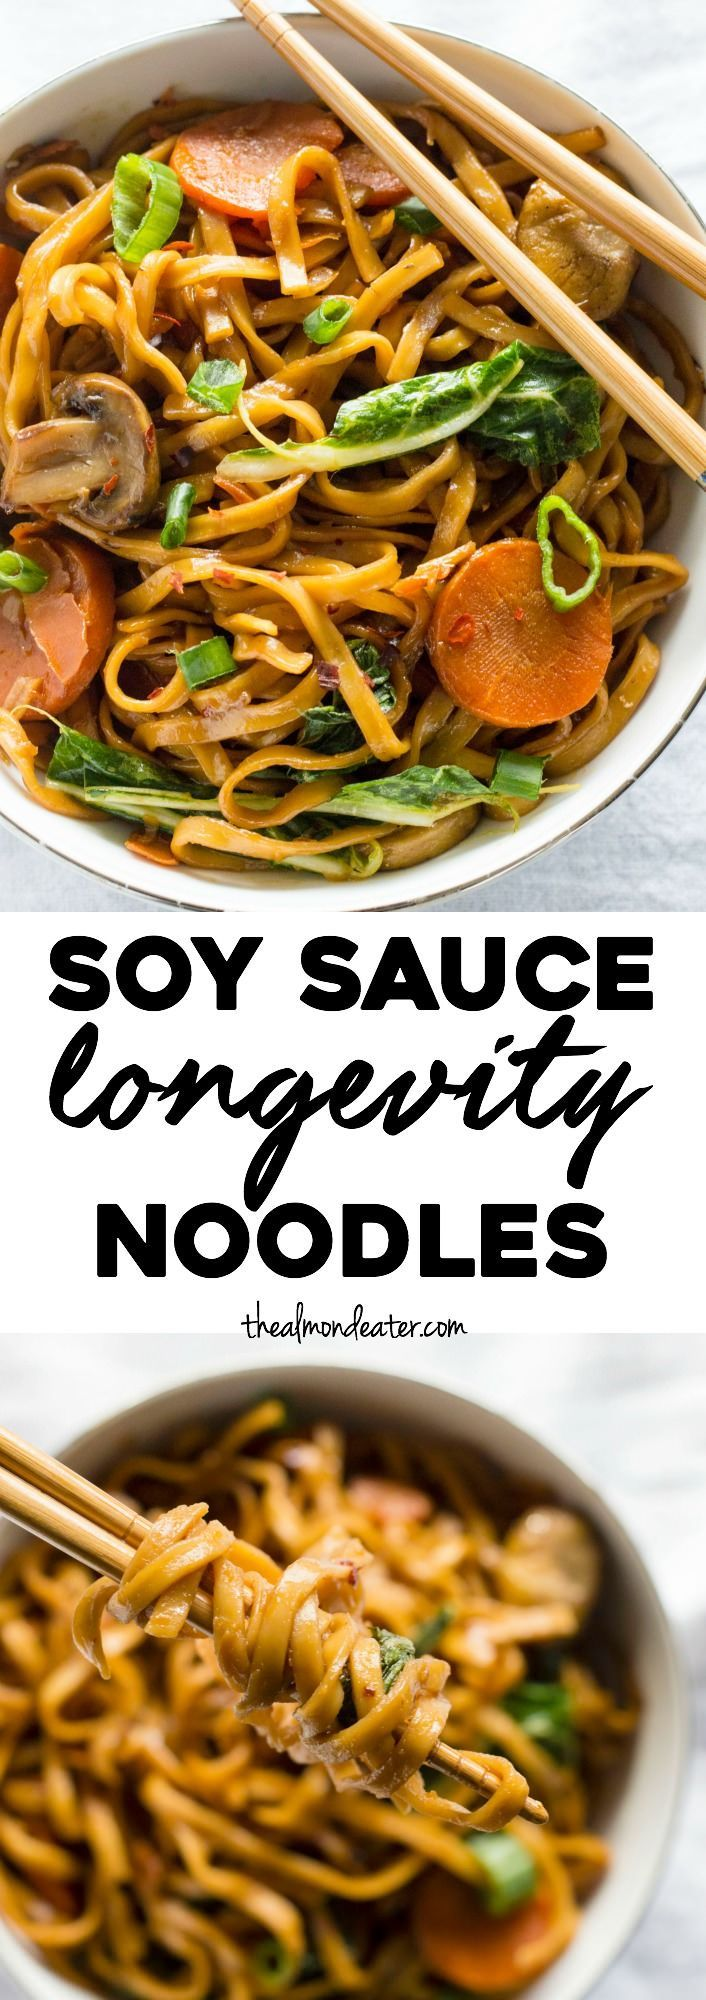 Soy Sauce Longevity Noodles | ONE PAN noodles marinated in soy sauce and ready in just 30 minutes!